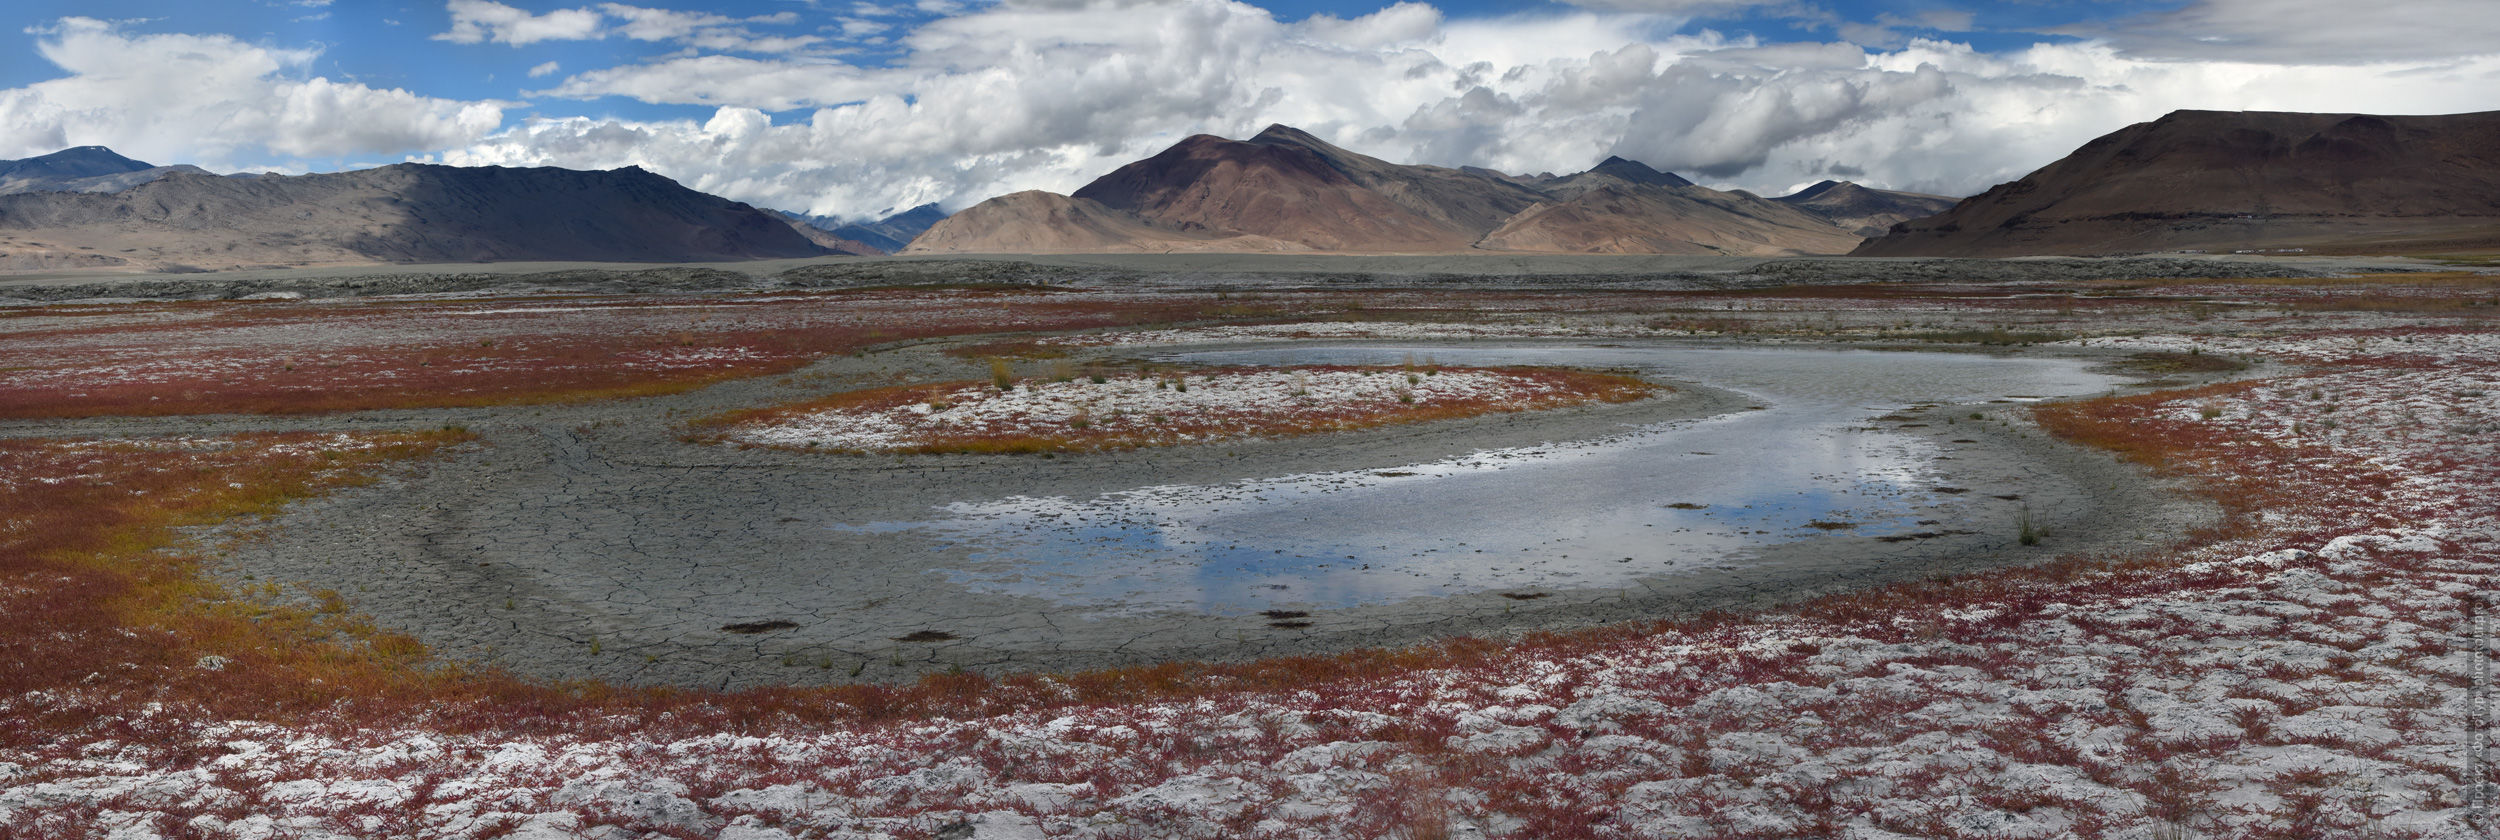 Lake Tso Kar. Tour for artists in Tibet: Watercolor-1: Watercolor painting in Ladakh with Pavel Pugachev, 04.08. - 16.08. 2018